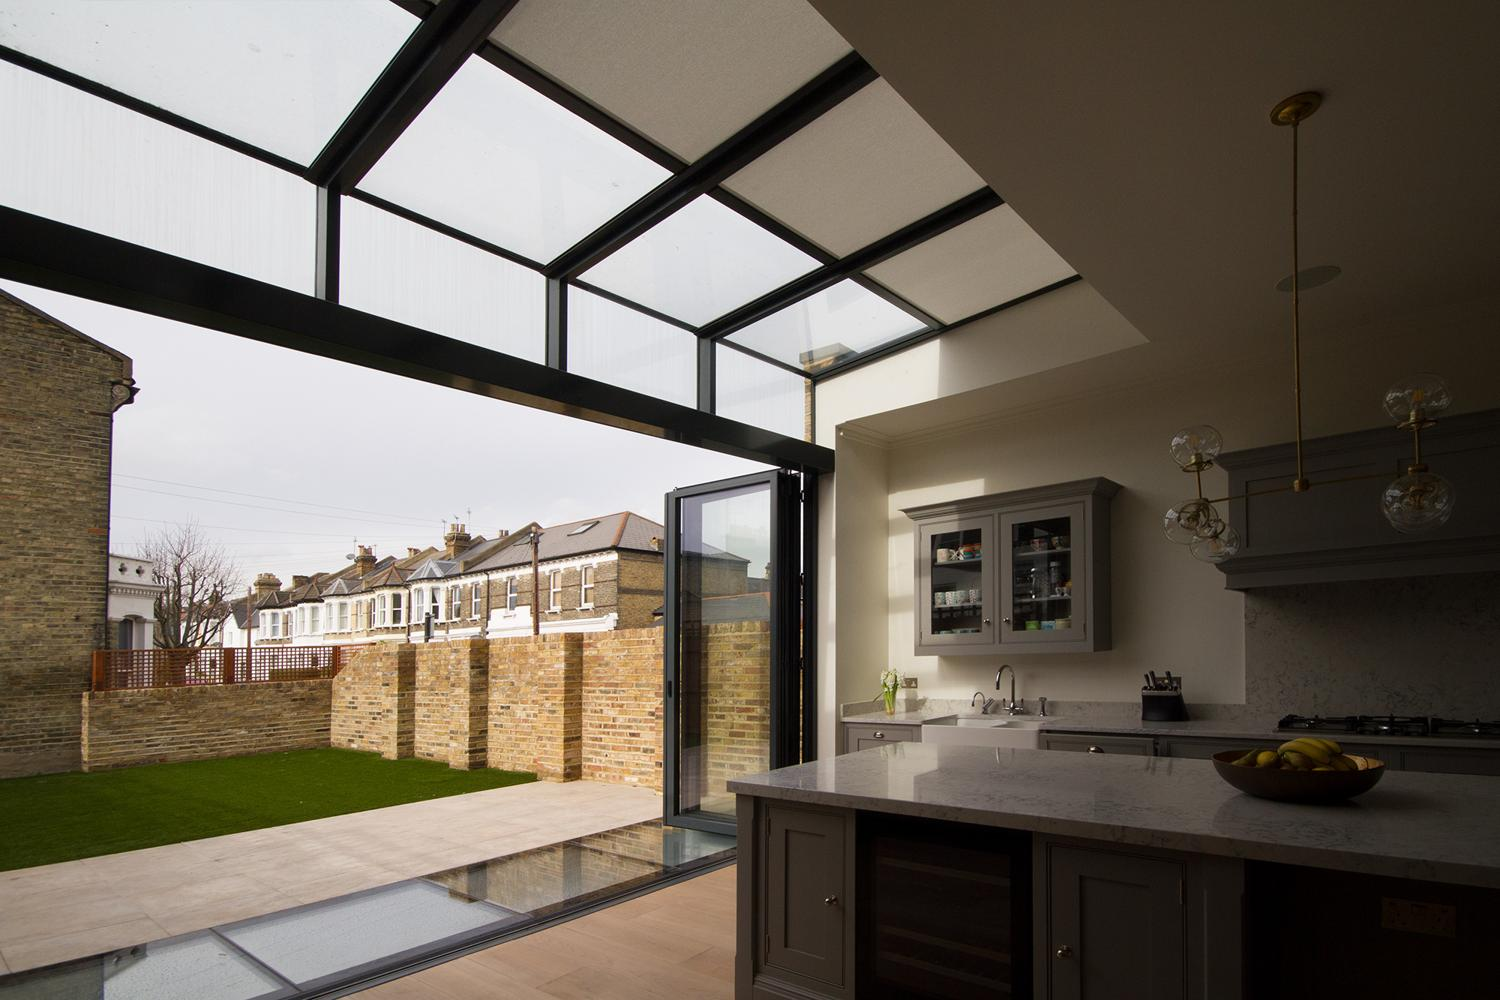 Kitchen-Extension-with-Skylight-Roller-Blind.jpg